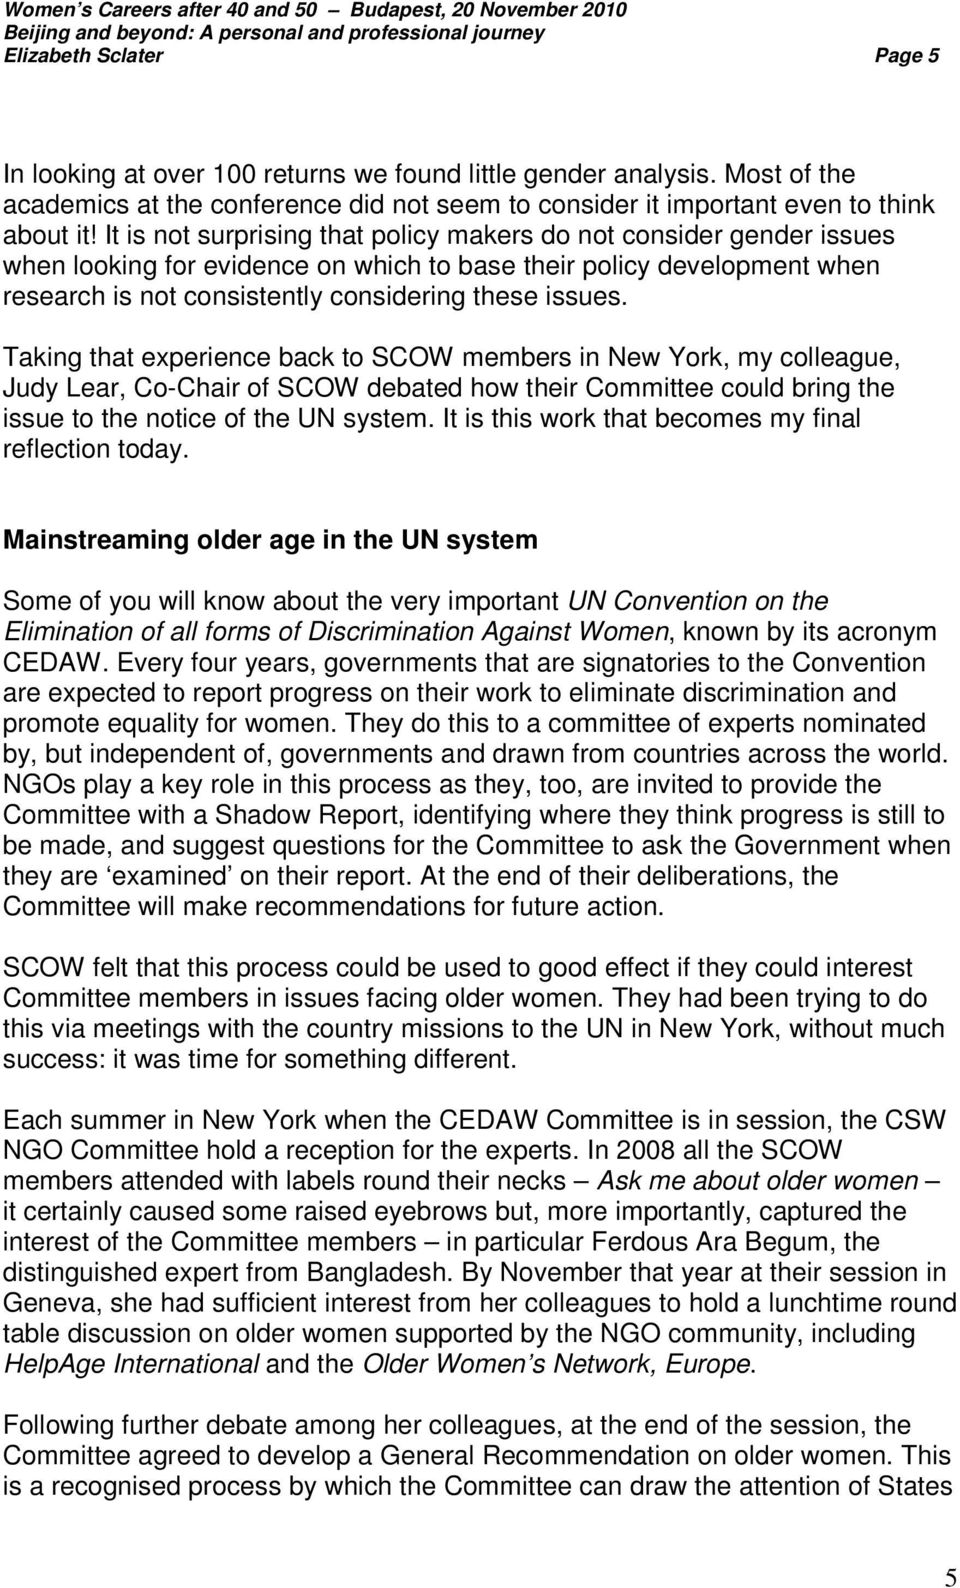 Taking that experience back to SCOW members in New York, my colleague, Judy Lear, Co-Chair of SCOW debated how their Committee could bring the issue to the notice of the UN system.